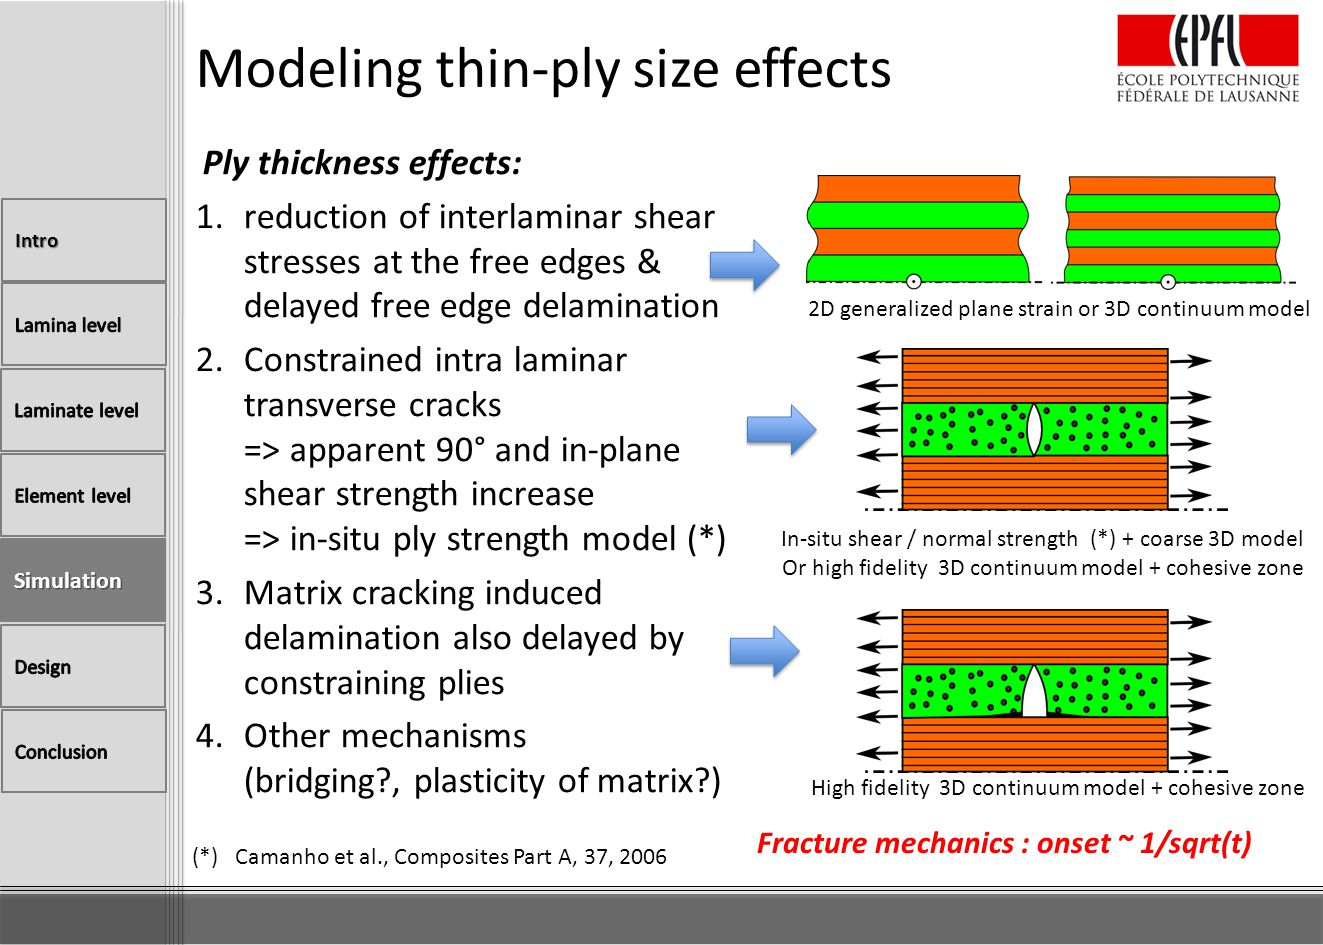 Modeling thin-ply size effects